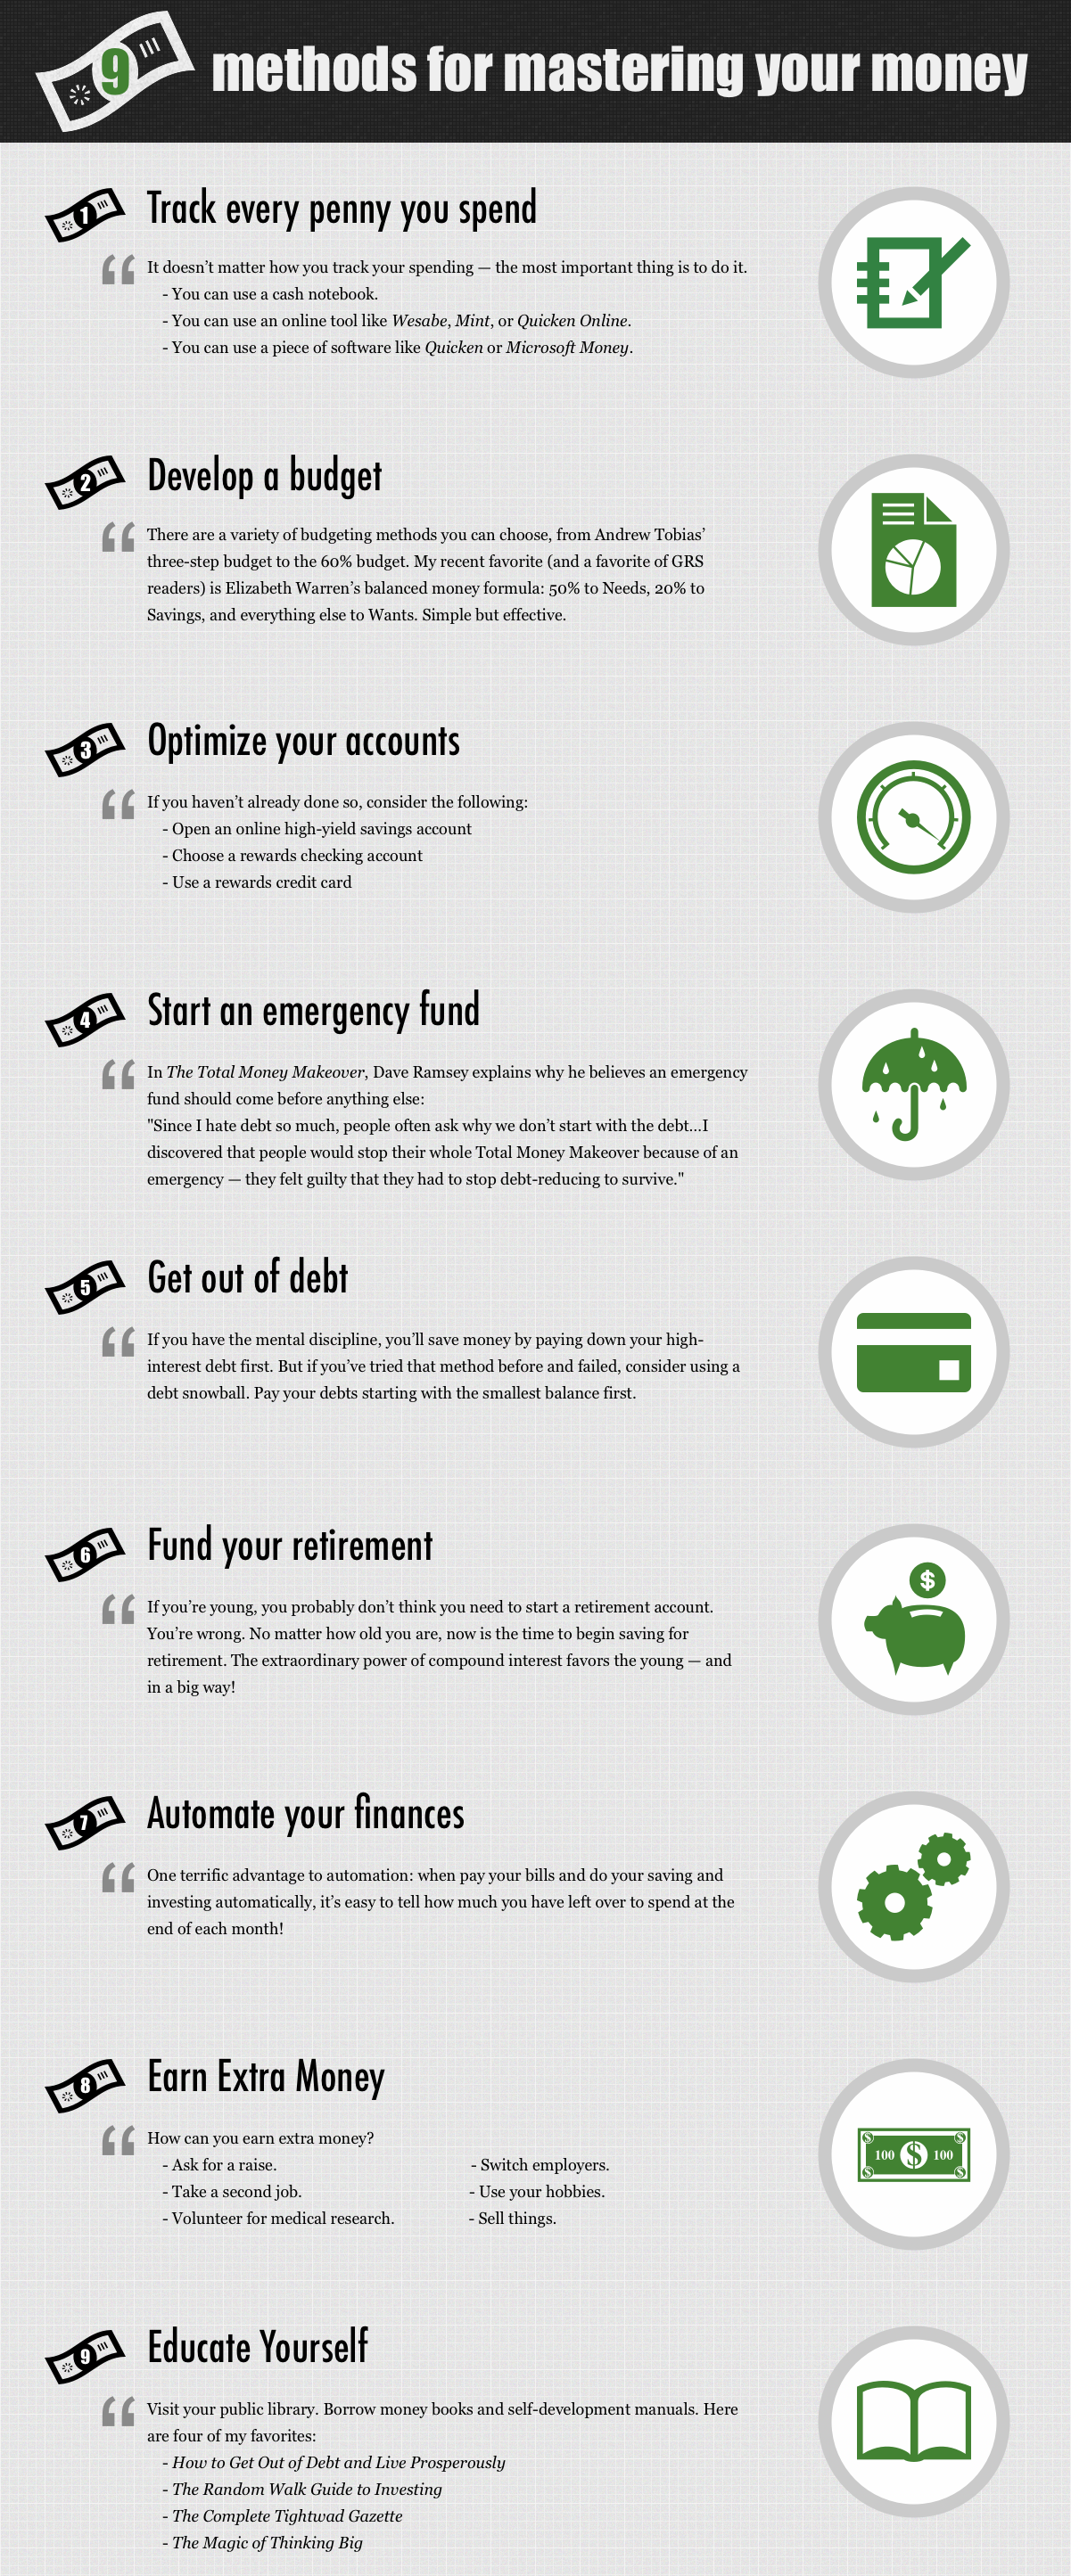 9 methods for mastering your money